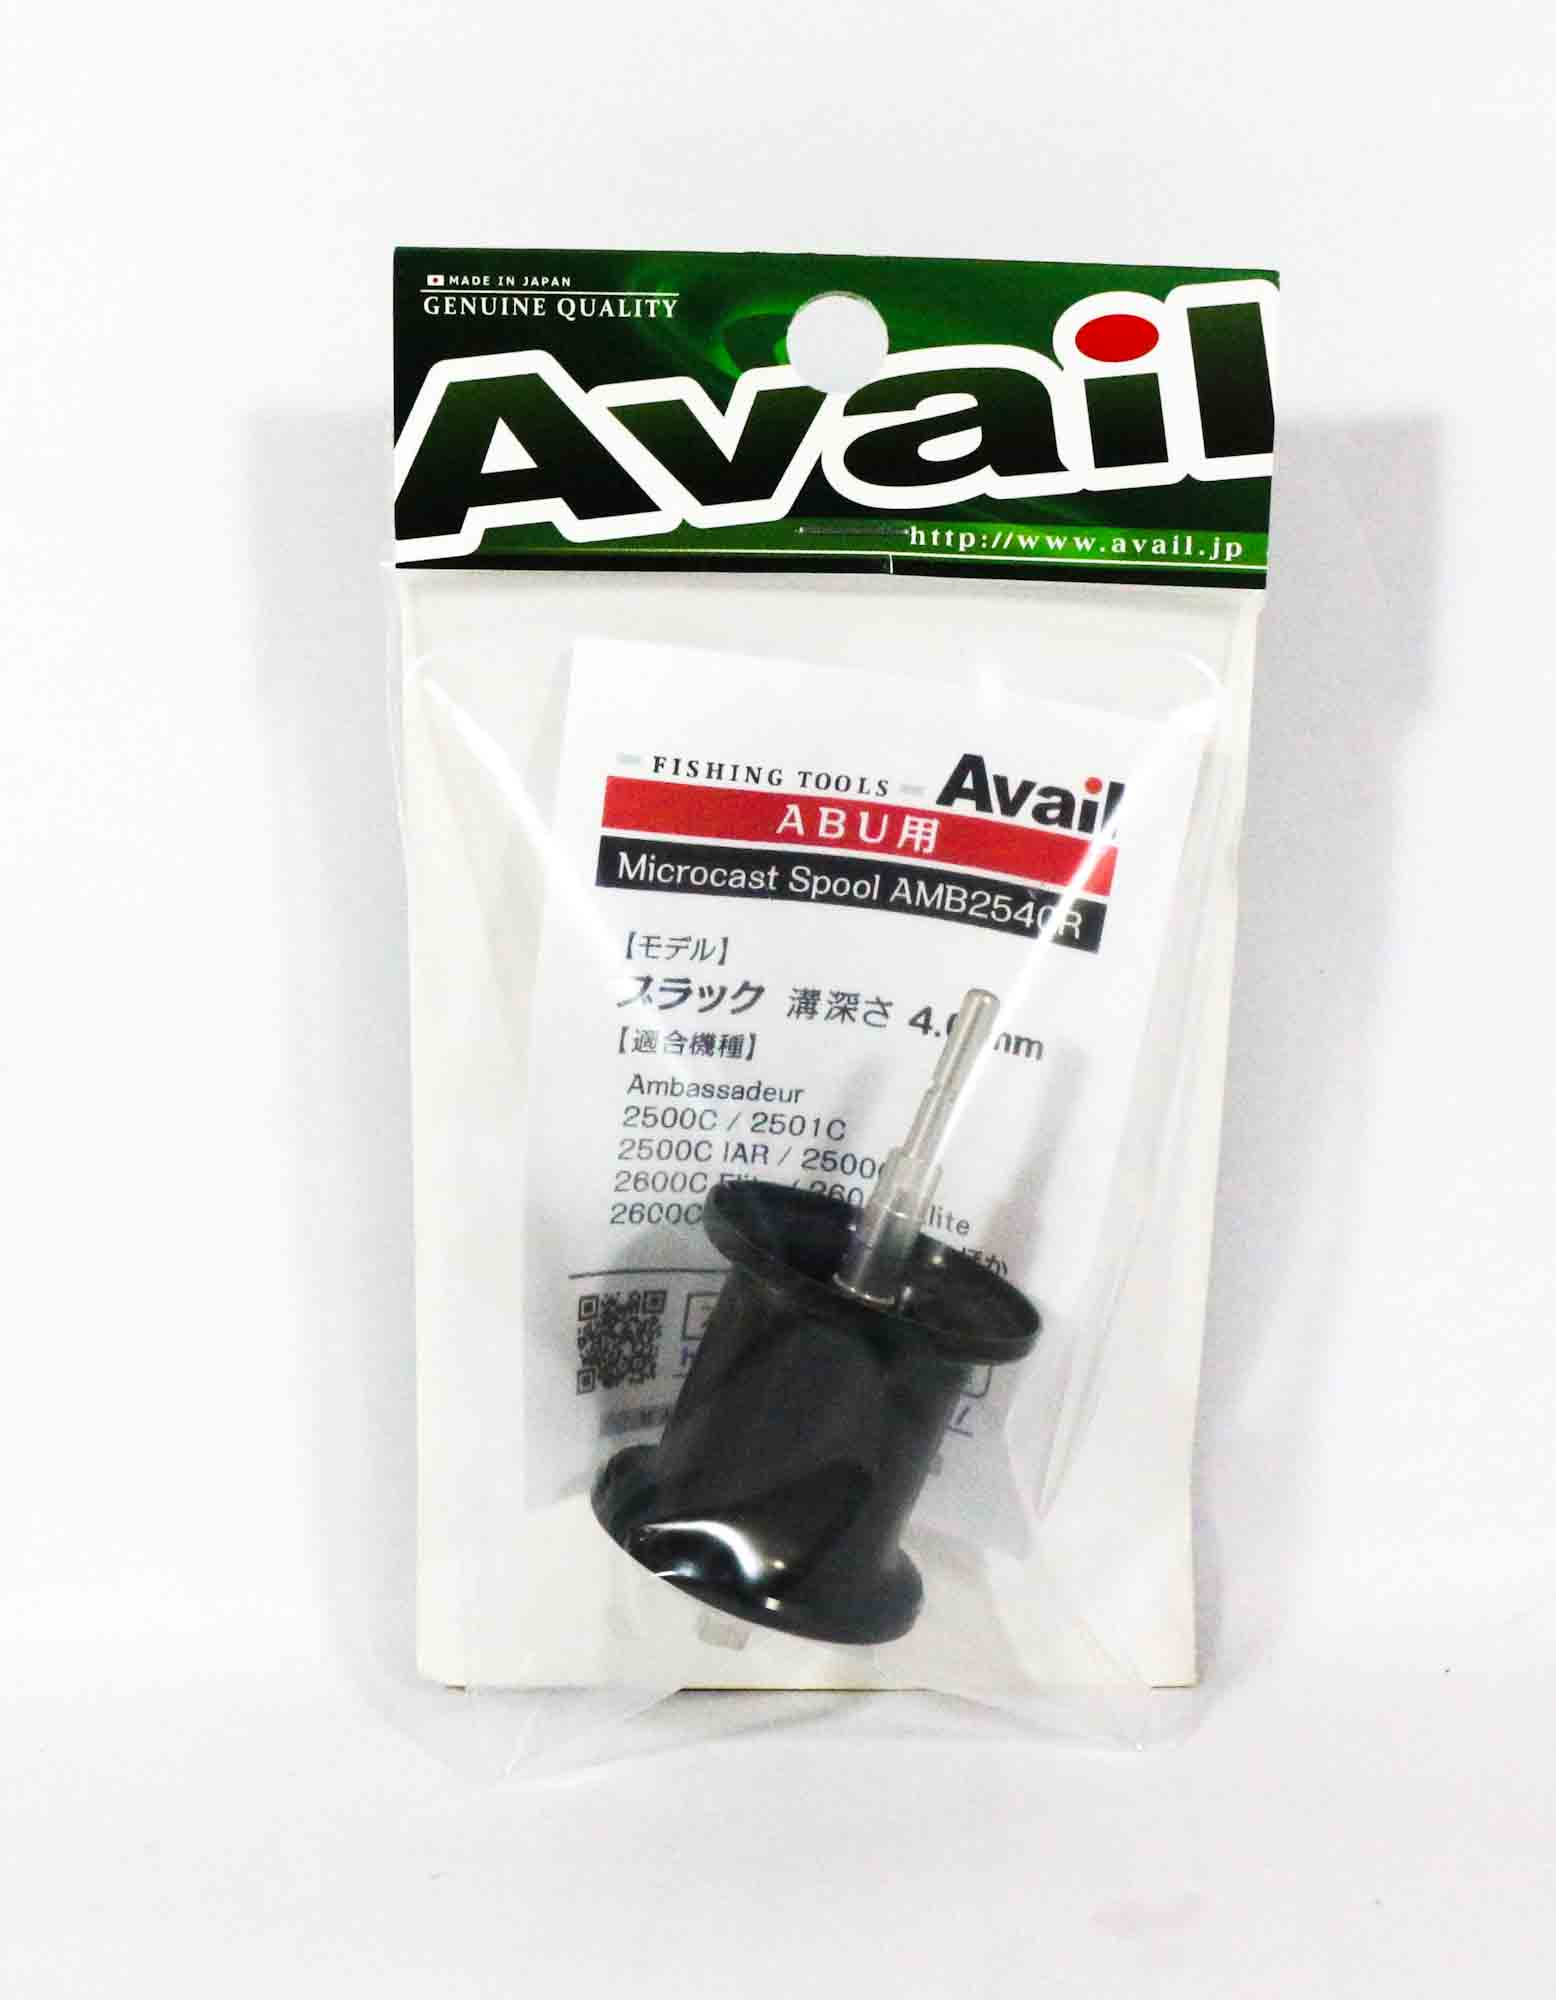 Avail Parts Abu 2500 Microcast Spool AMB2540R Black (7302)